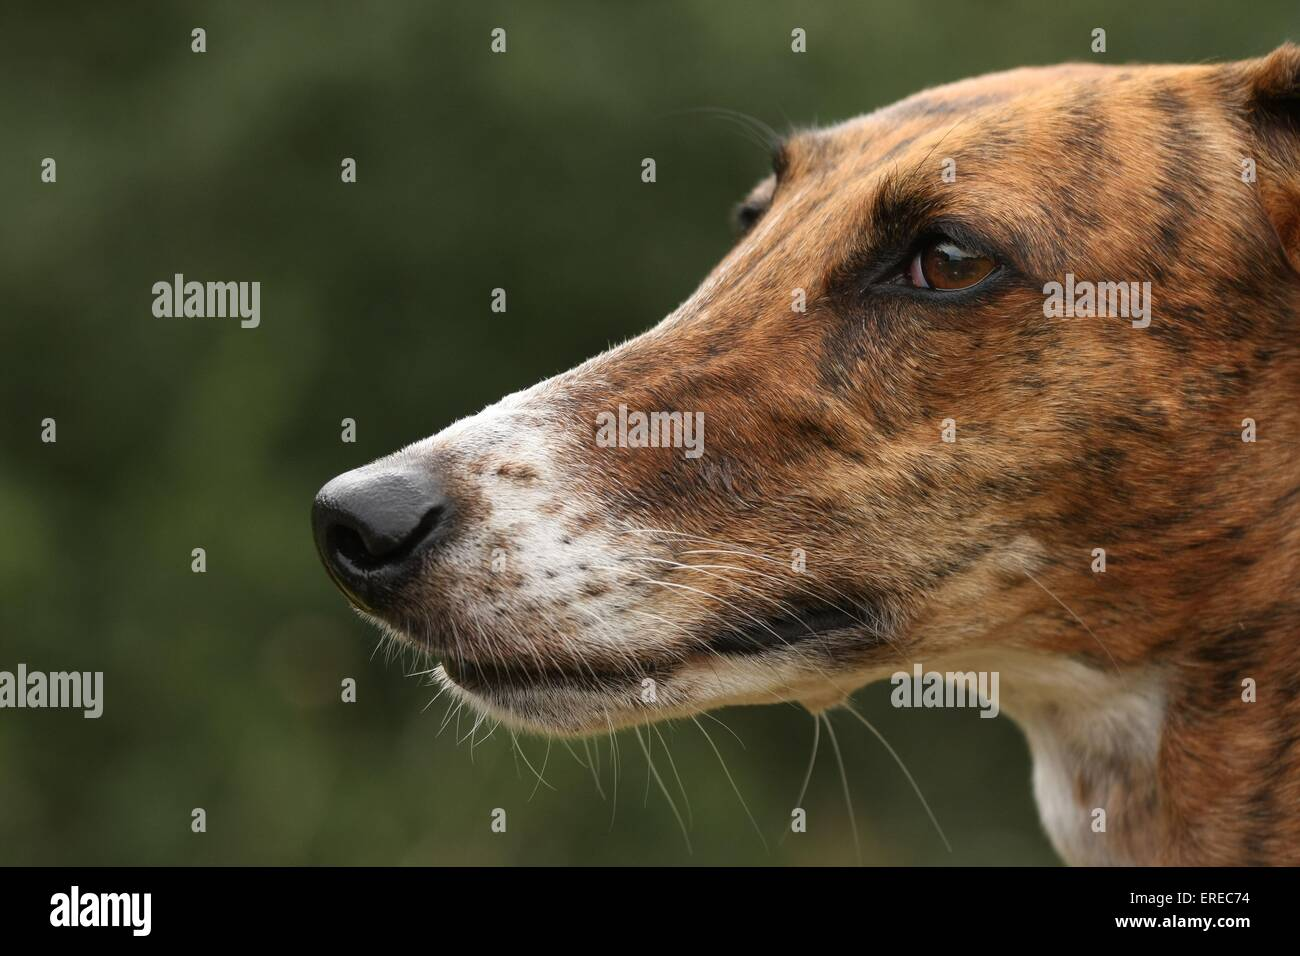 Galgo Espanol Portrait Stock Photo